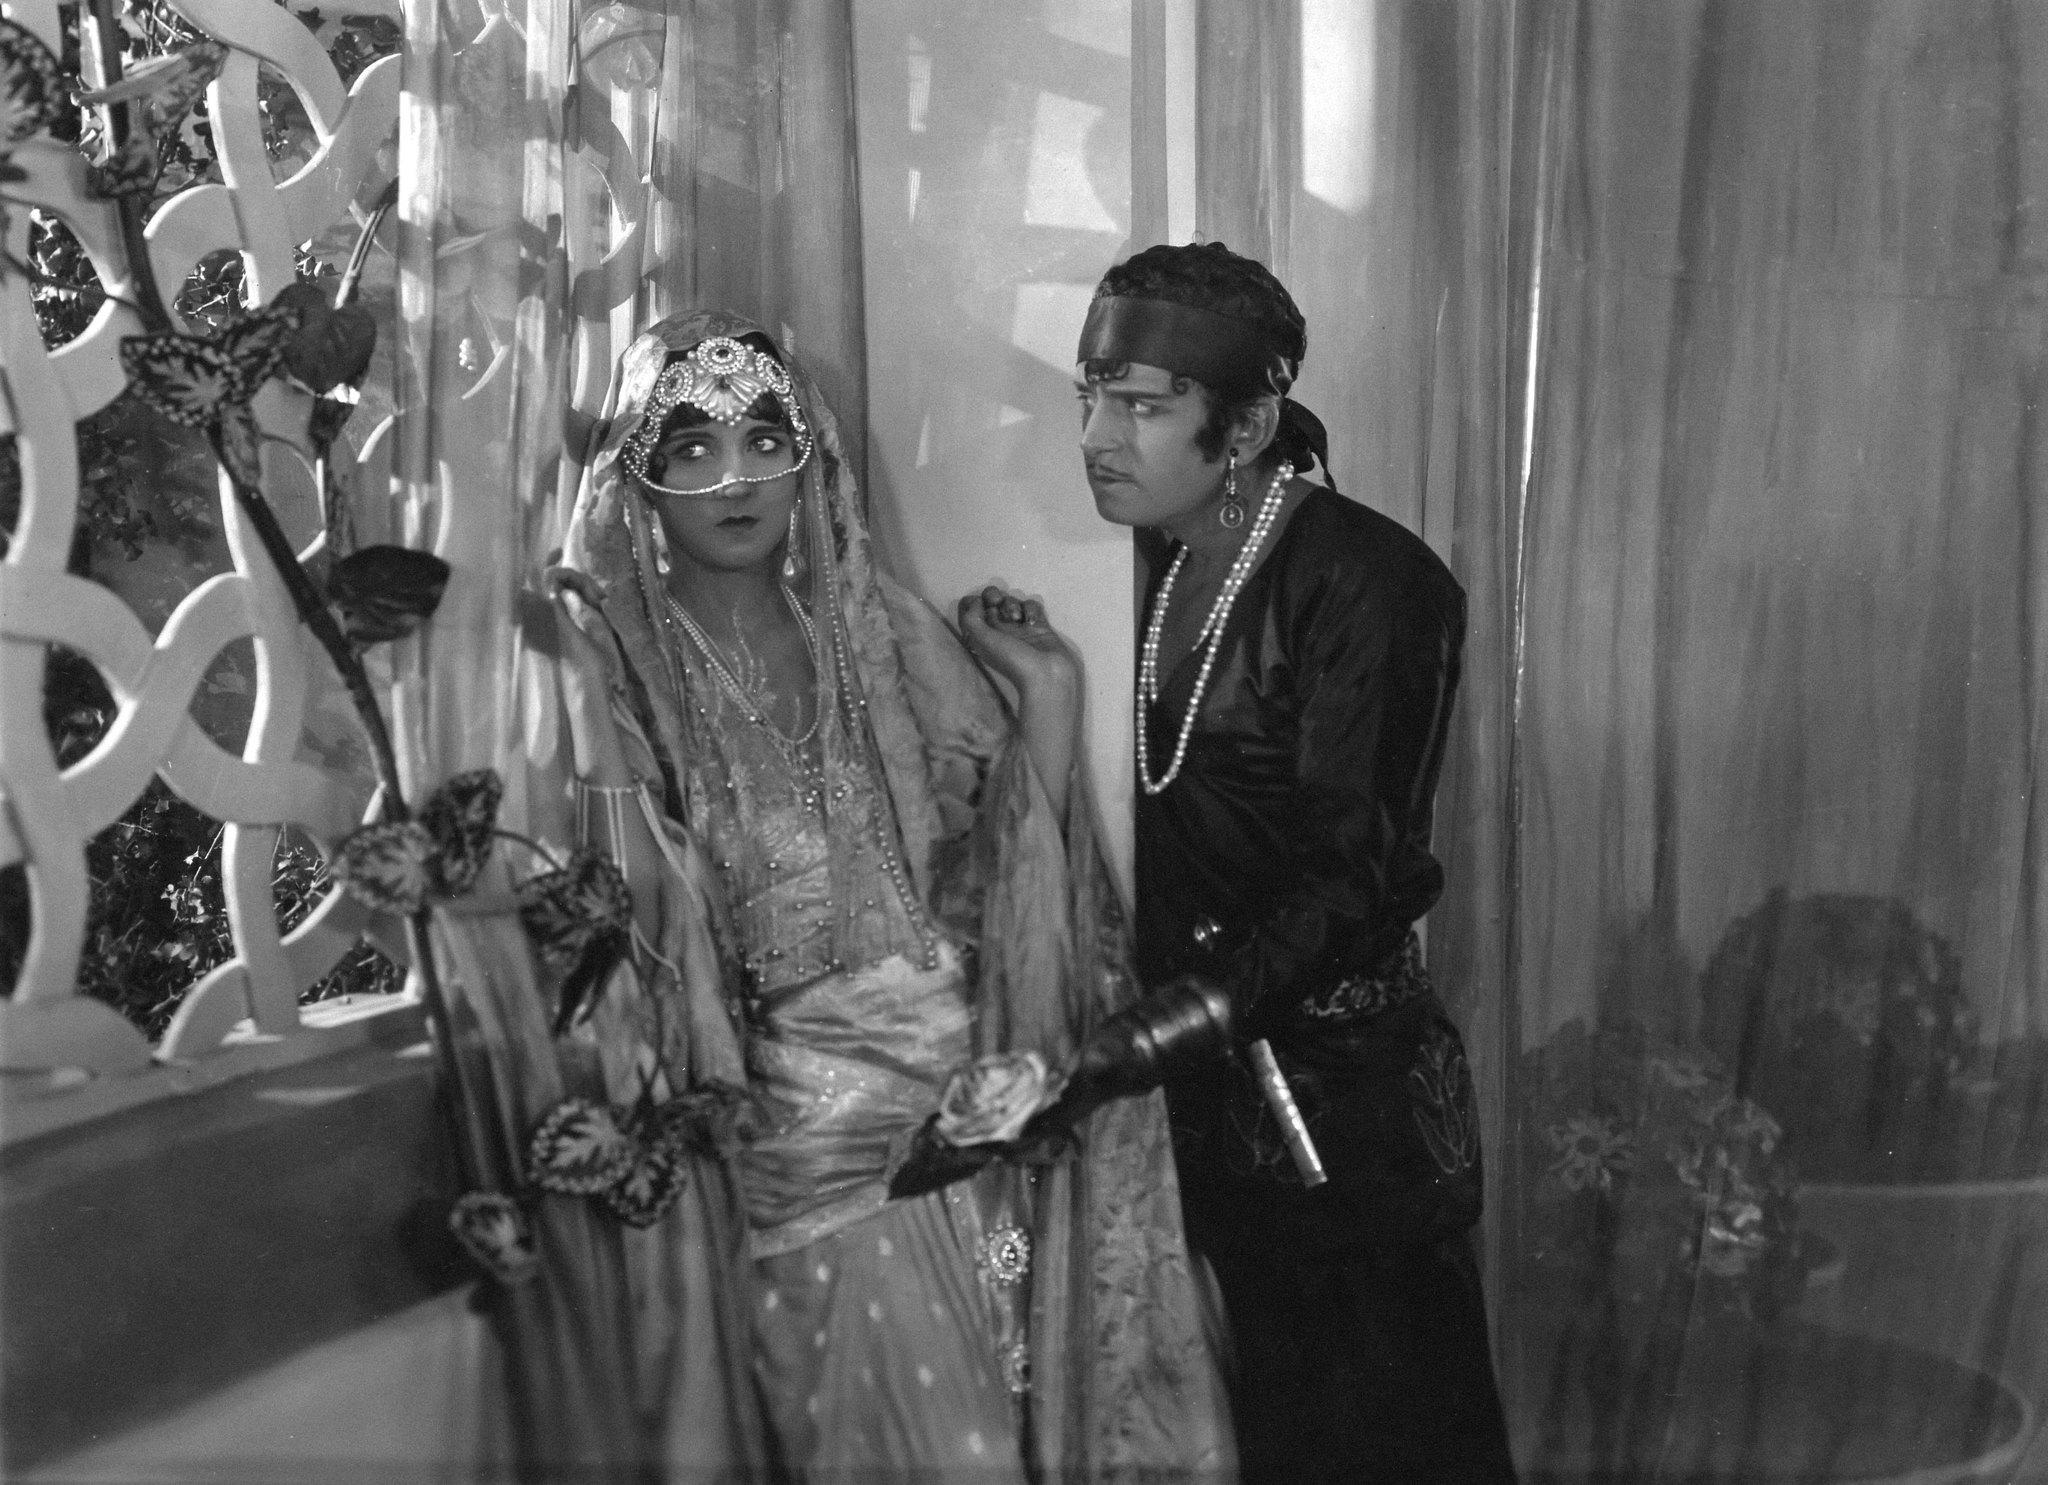 Douglas Fairbanks as Ahmed, the Thief of Bagdad and Julanne Johnston as The Princess 1924 The Thief of Bagdad picture image